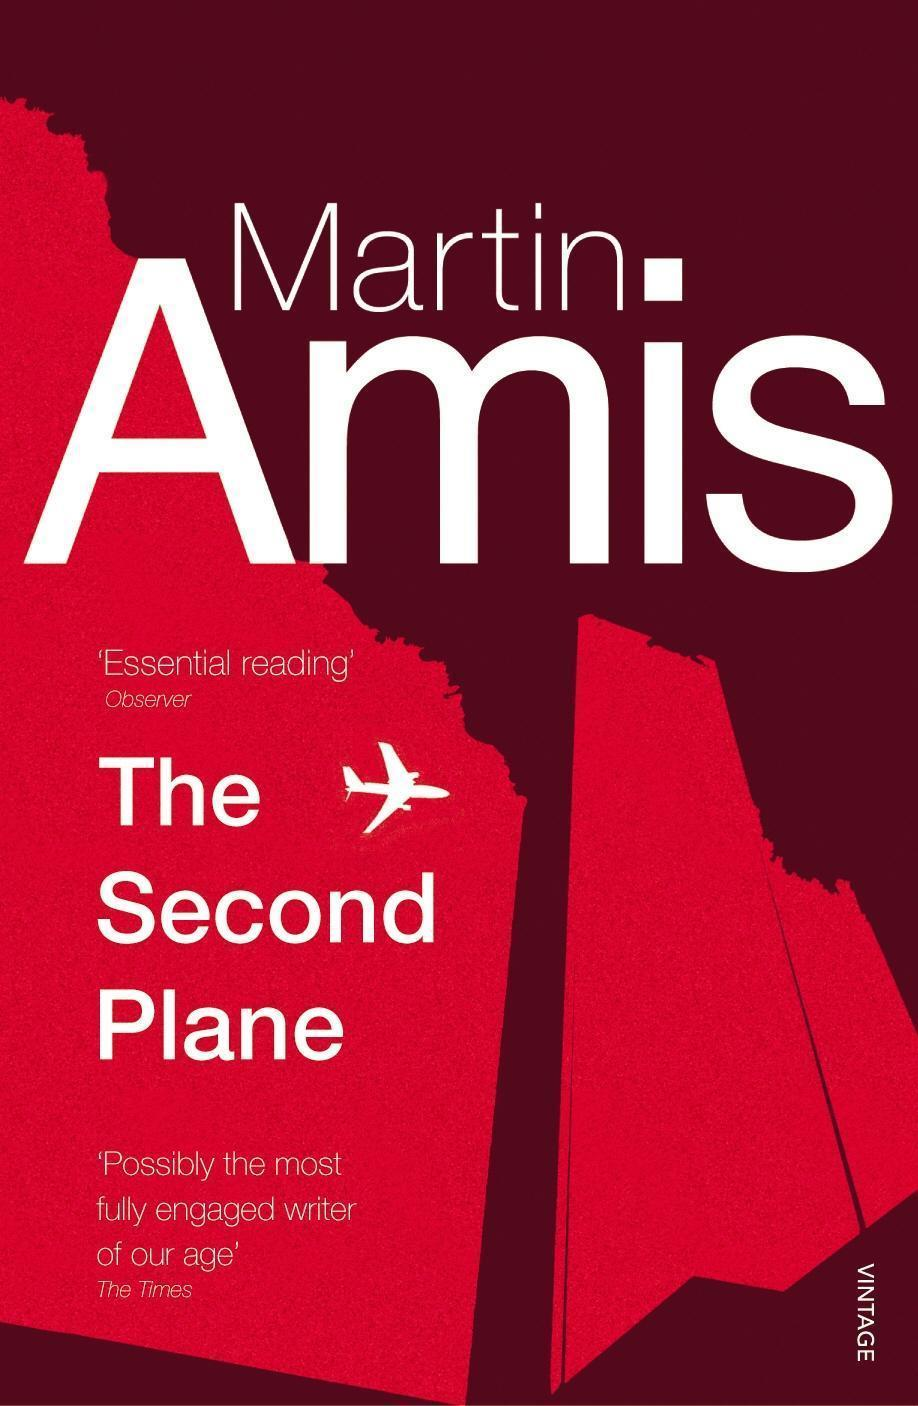 The Second Plane